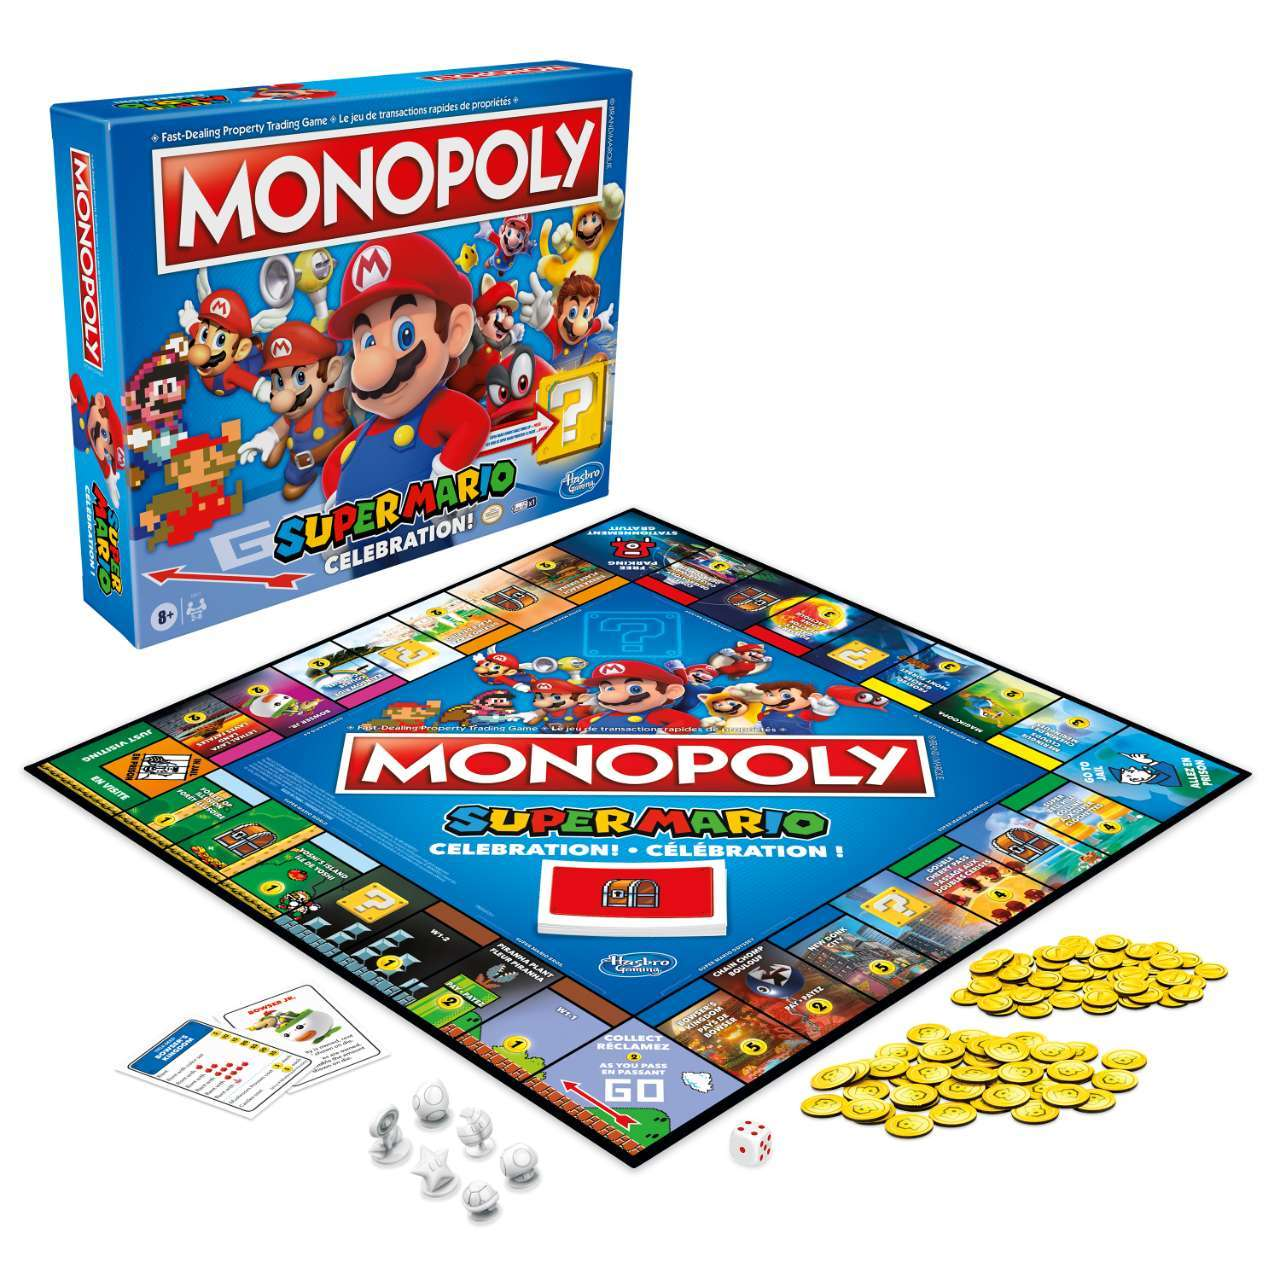 Monopoly Super Mario Celebration Edition_ Packaging and Game